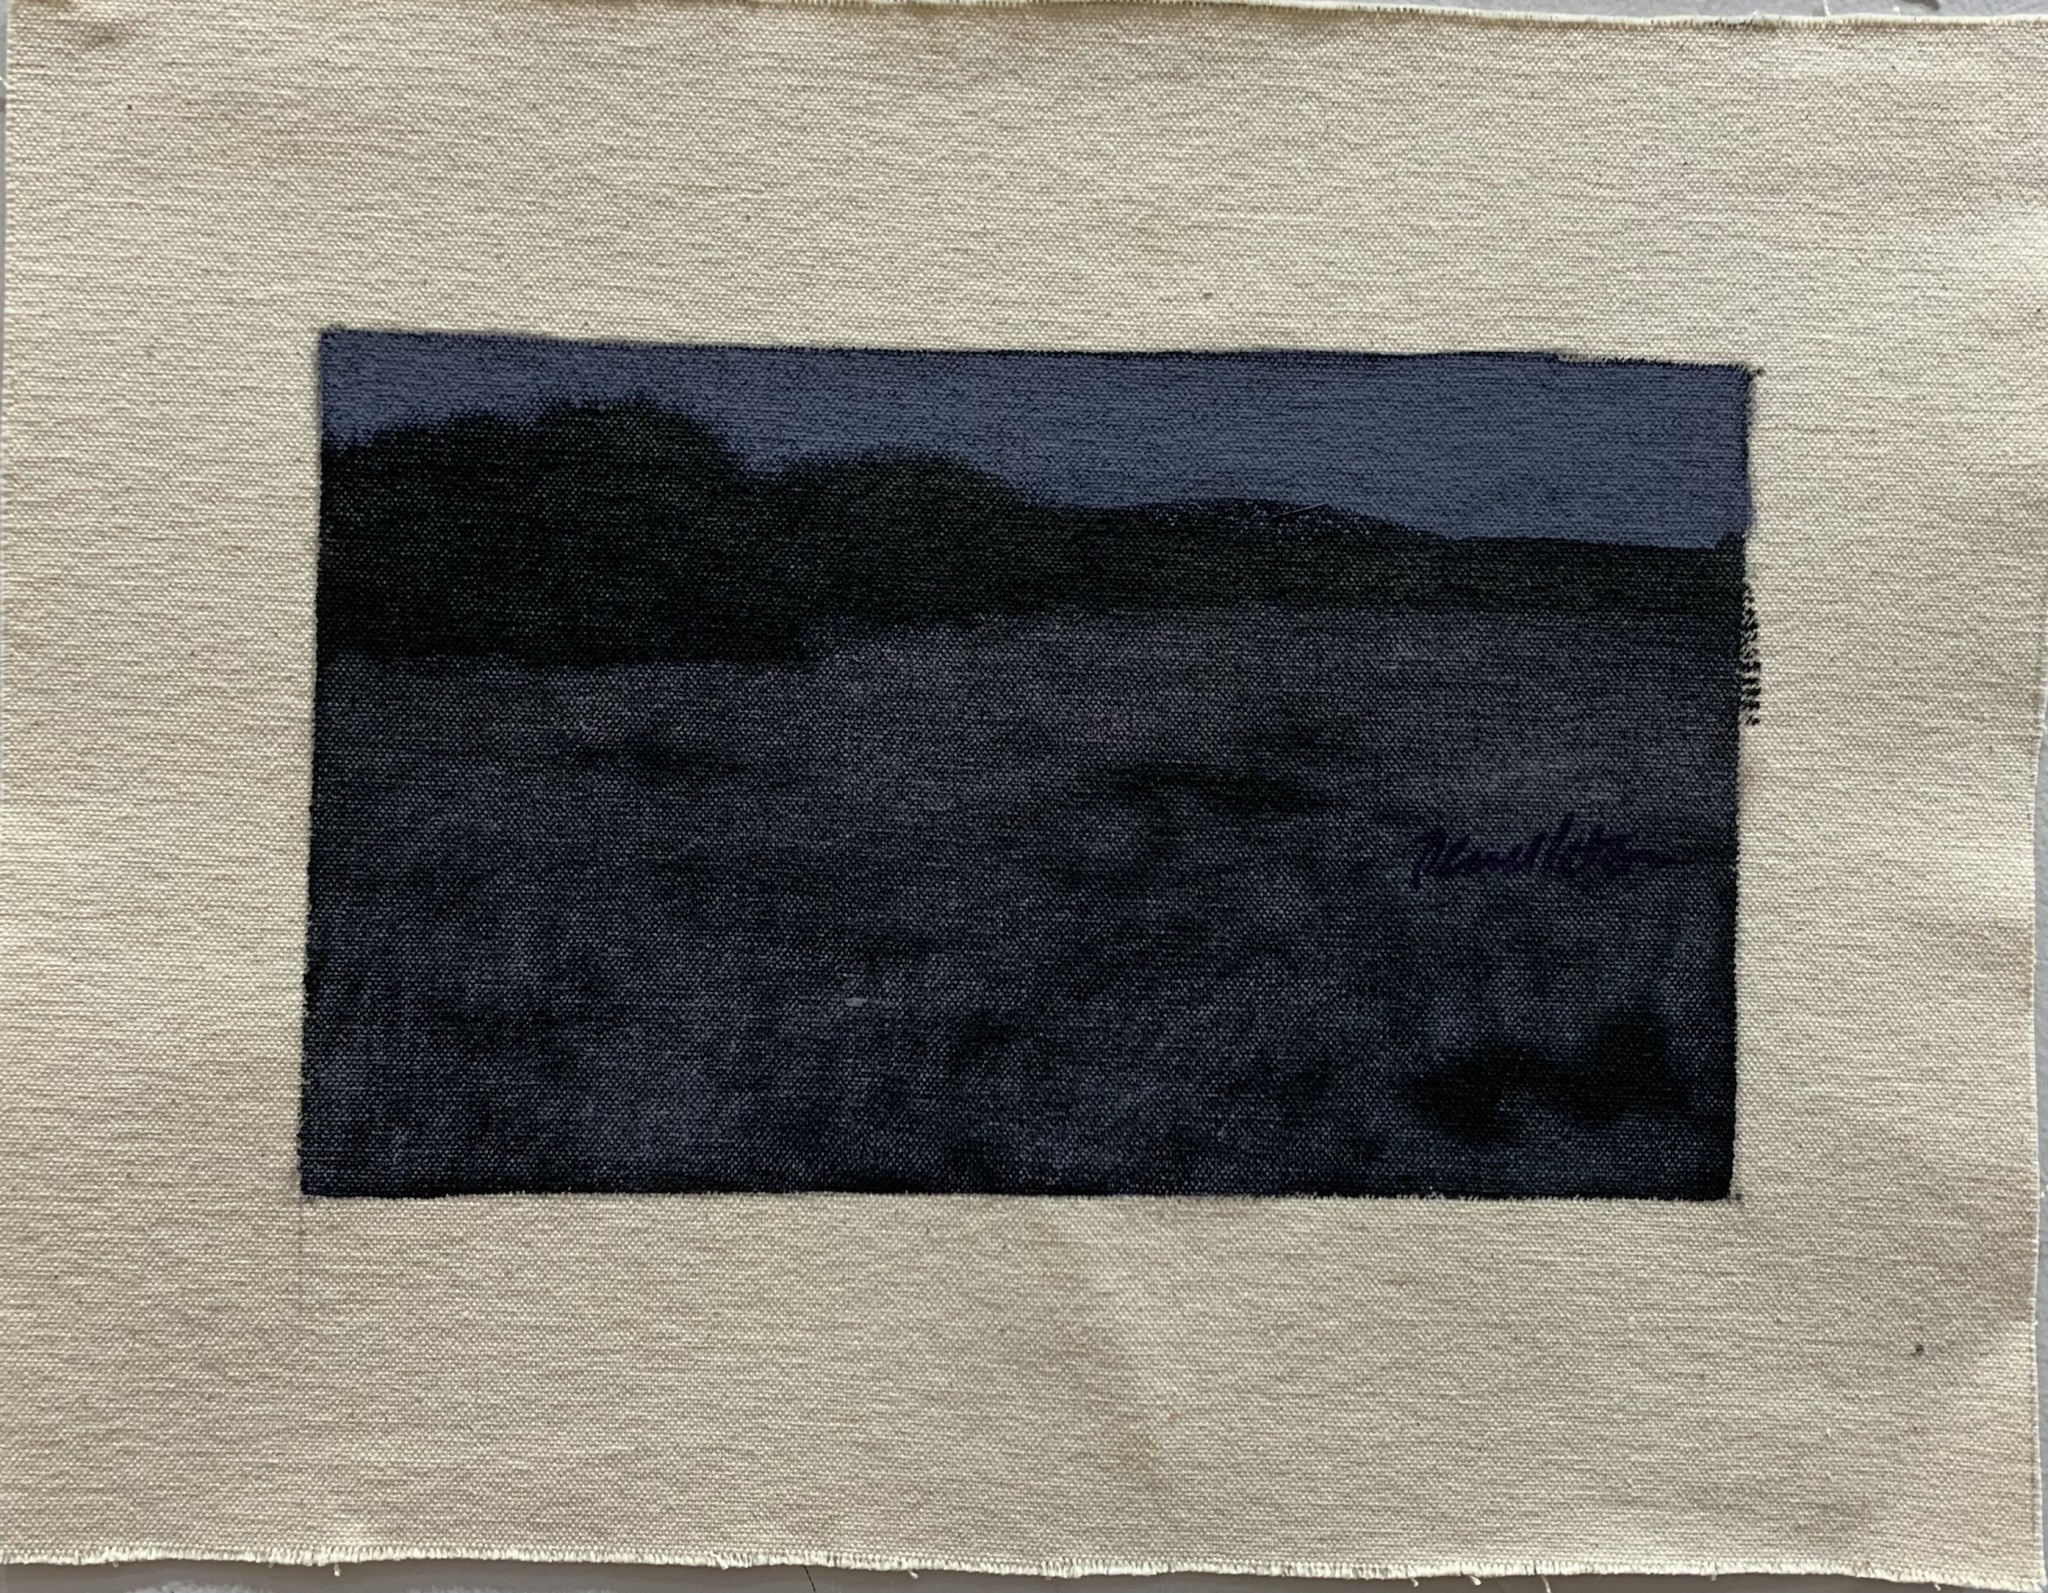 Small Untitled 11